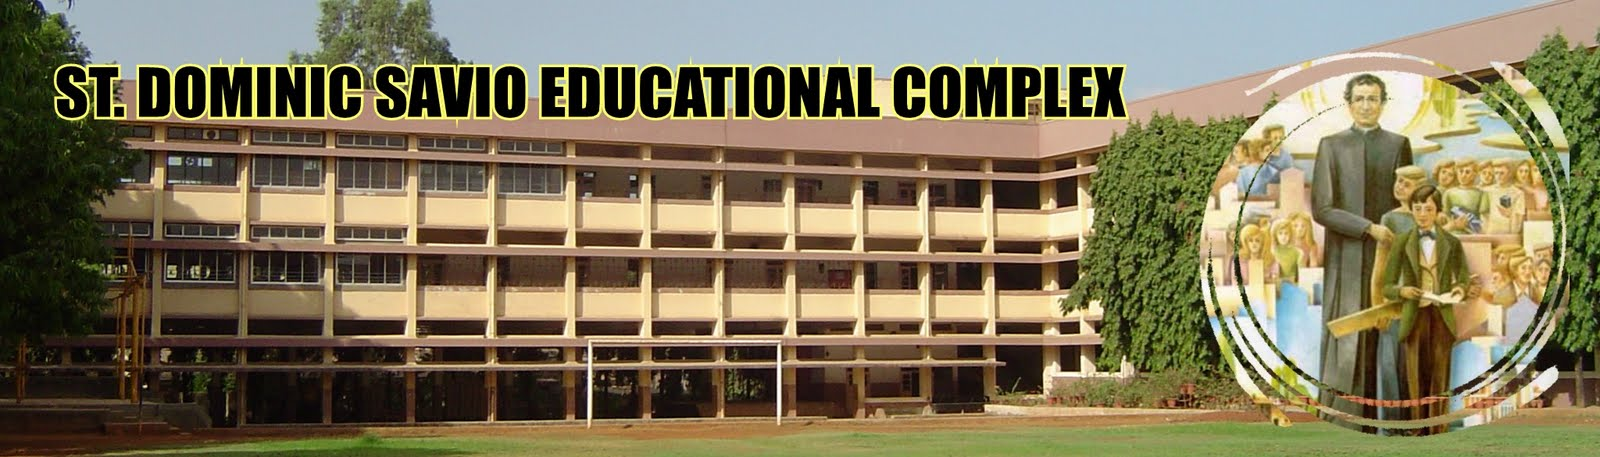 ST. DOMINIC SAVIO EDUCATIONAL COMPLEX  ANDHERI